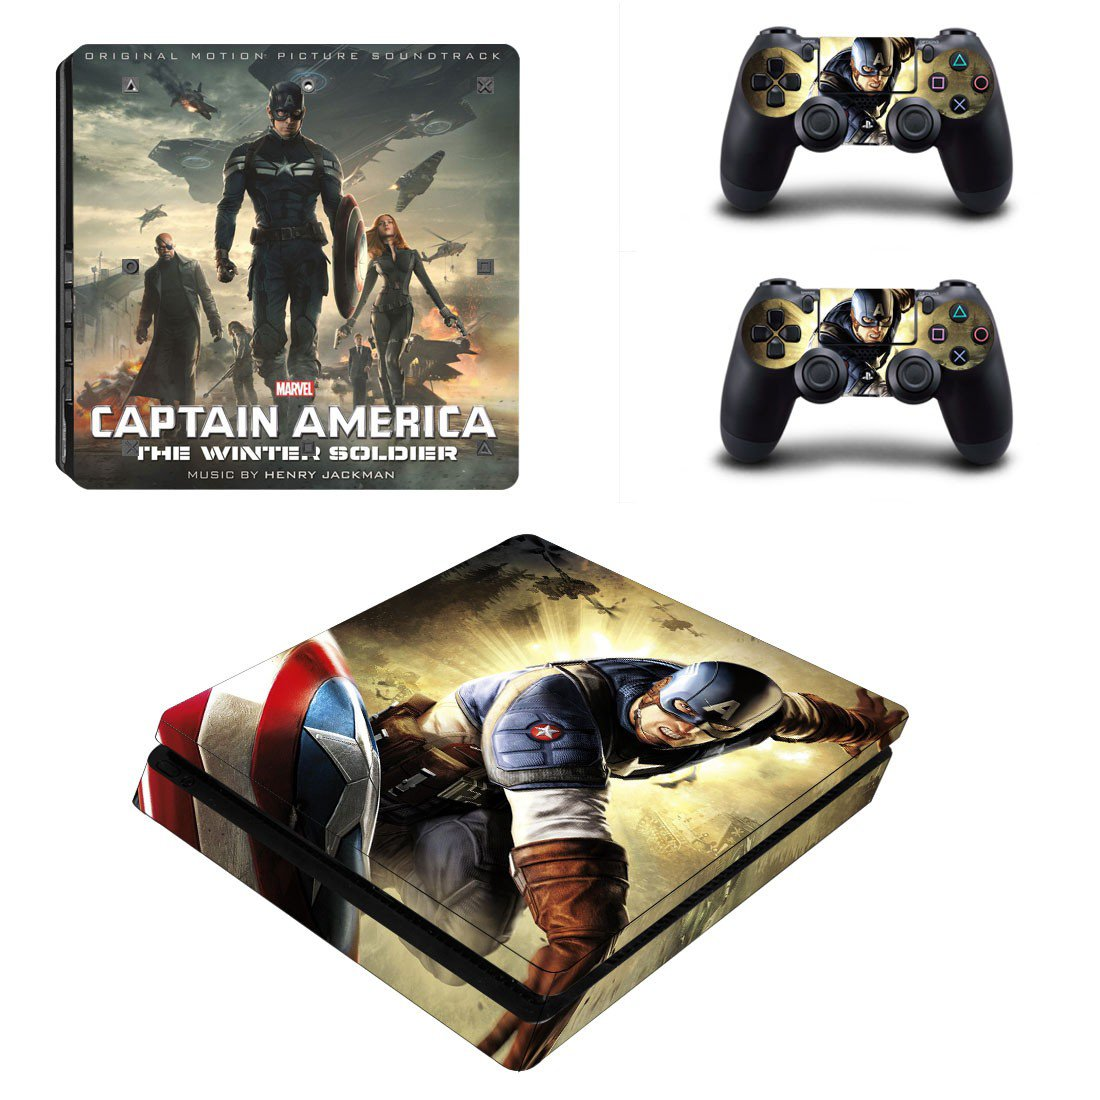 Captain America the winter soldier Play Station 4 slim skin decal for console and 2 controllers